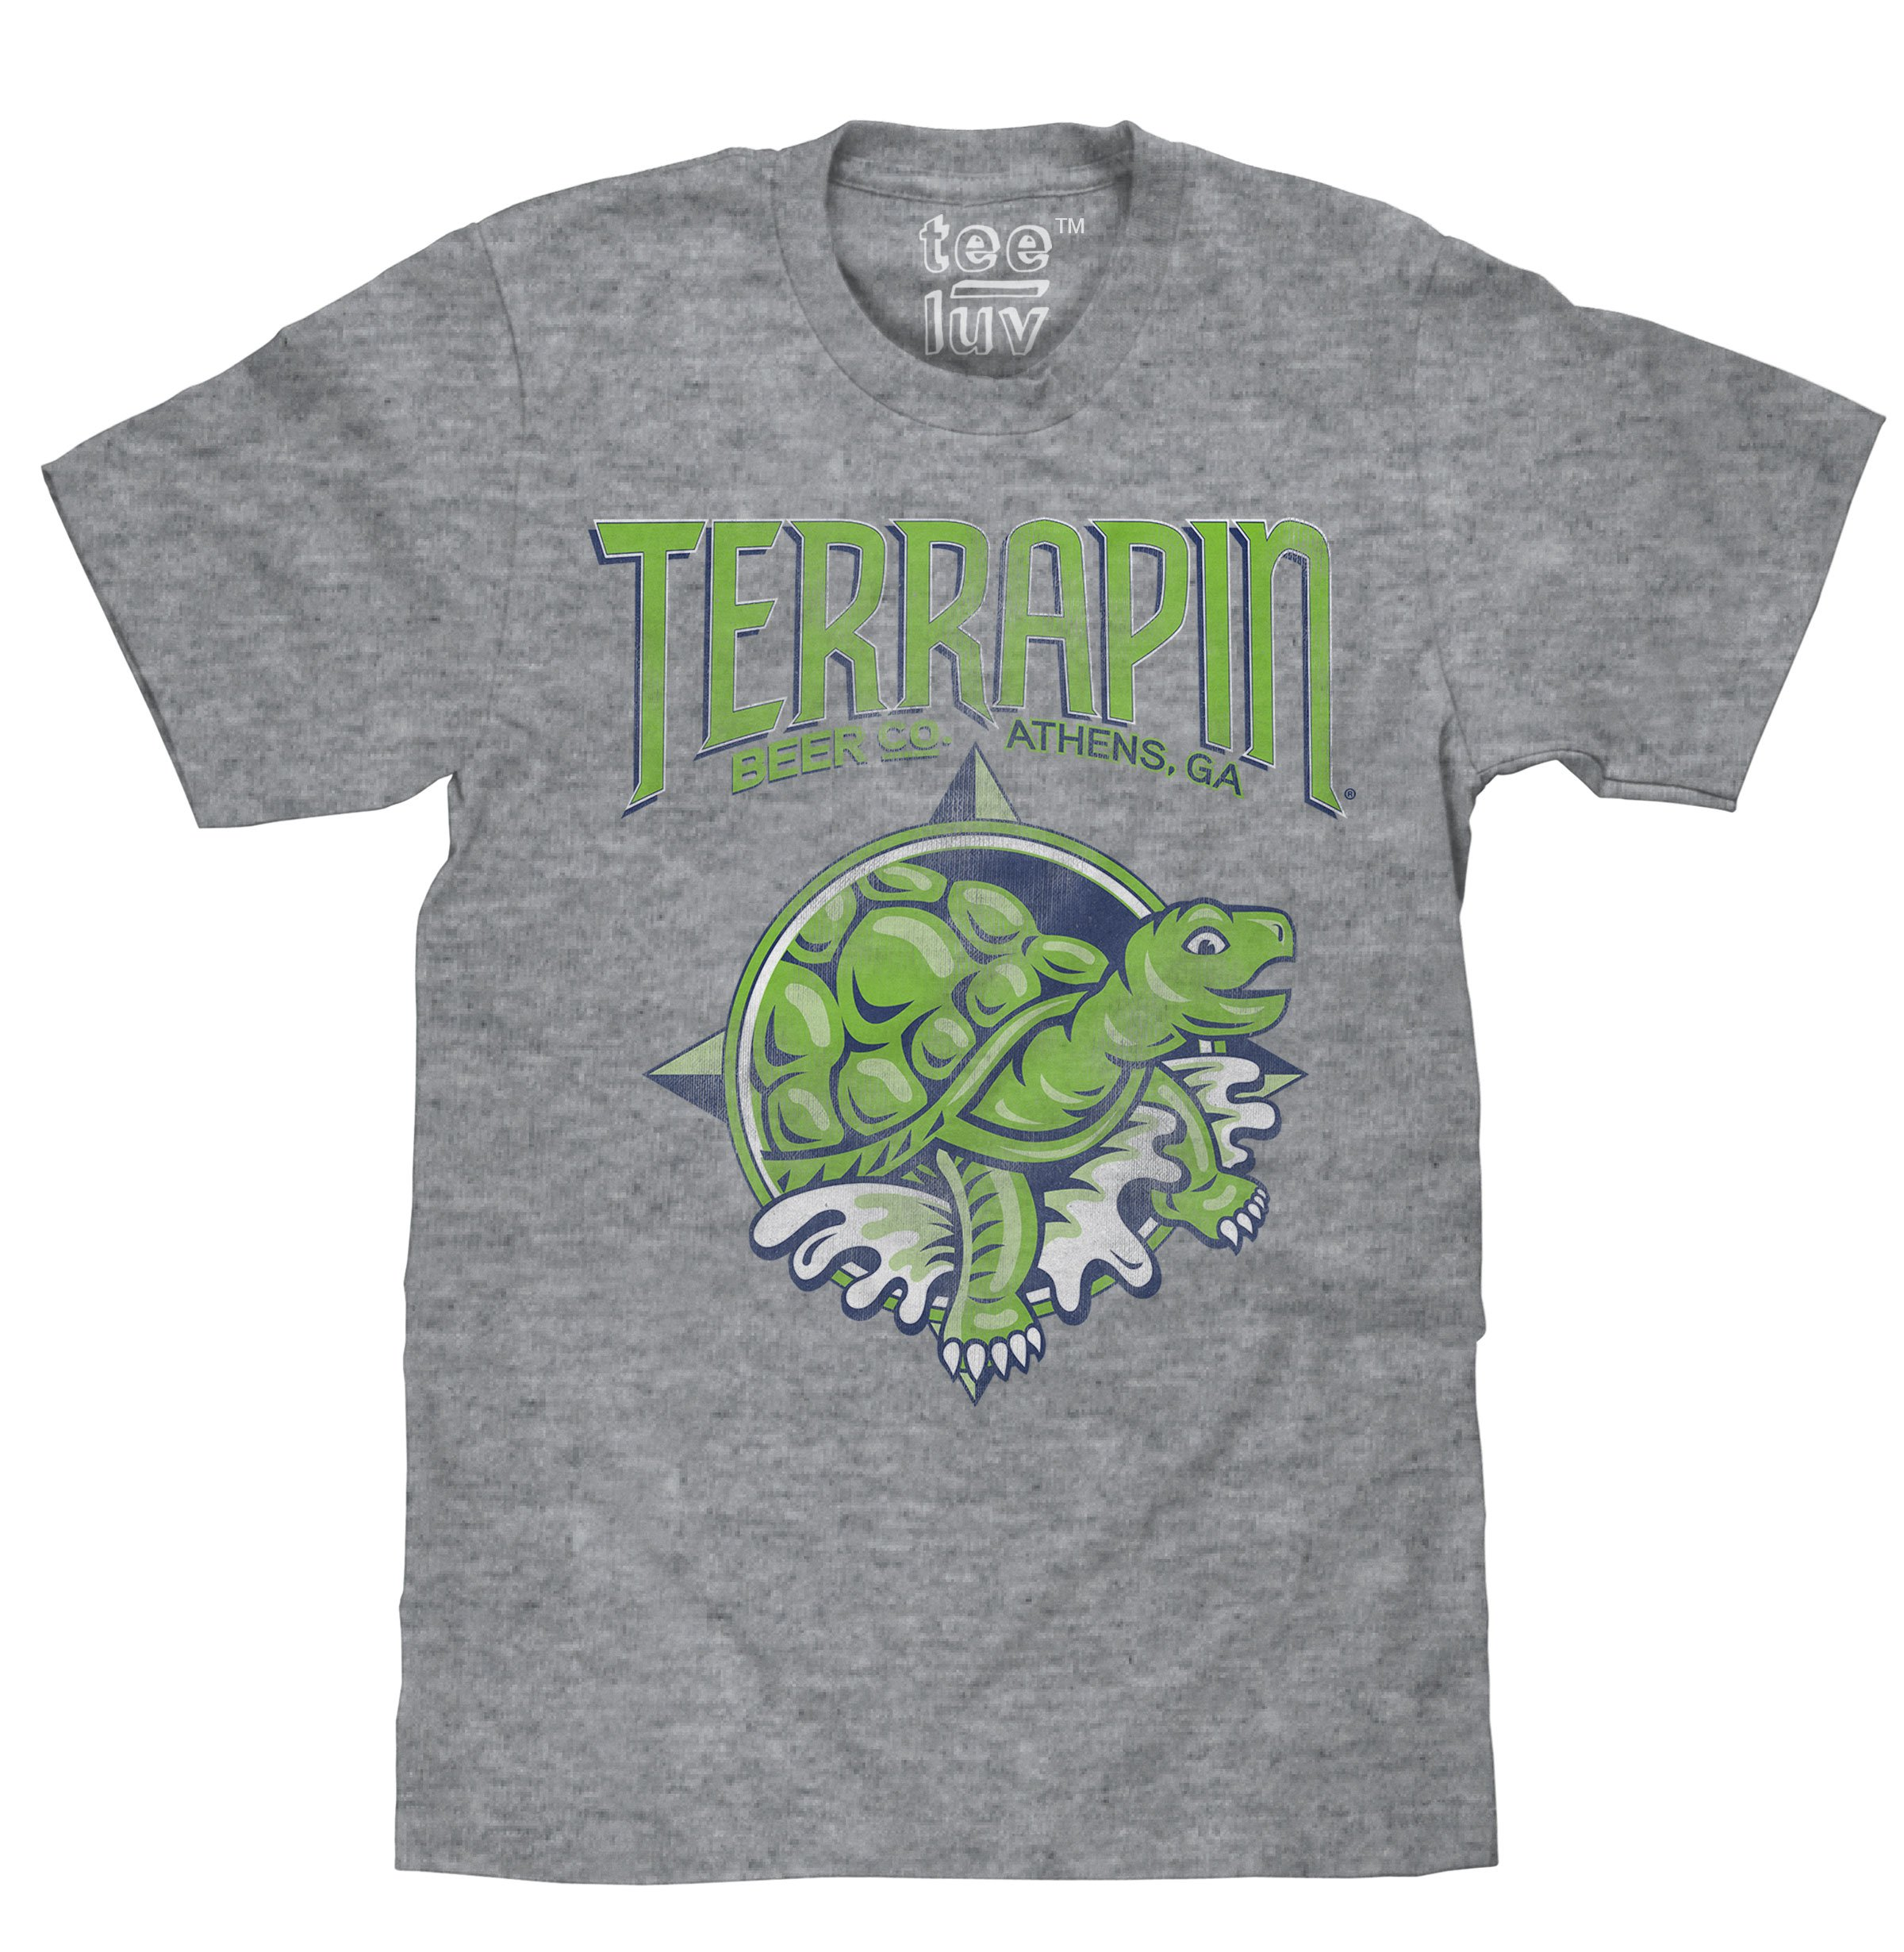 Terrapin Beer Co Soft Touch Ts Shirts